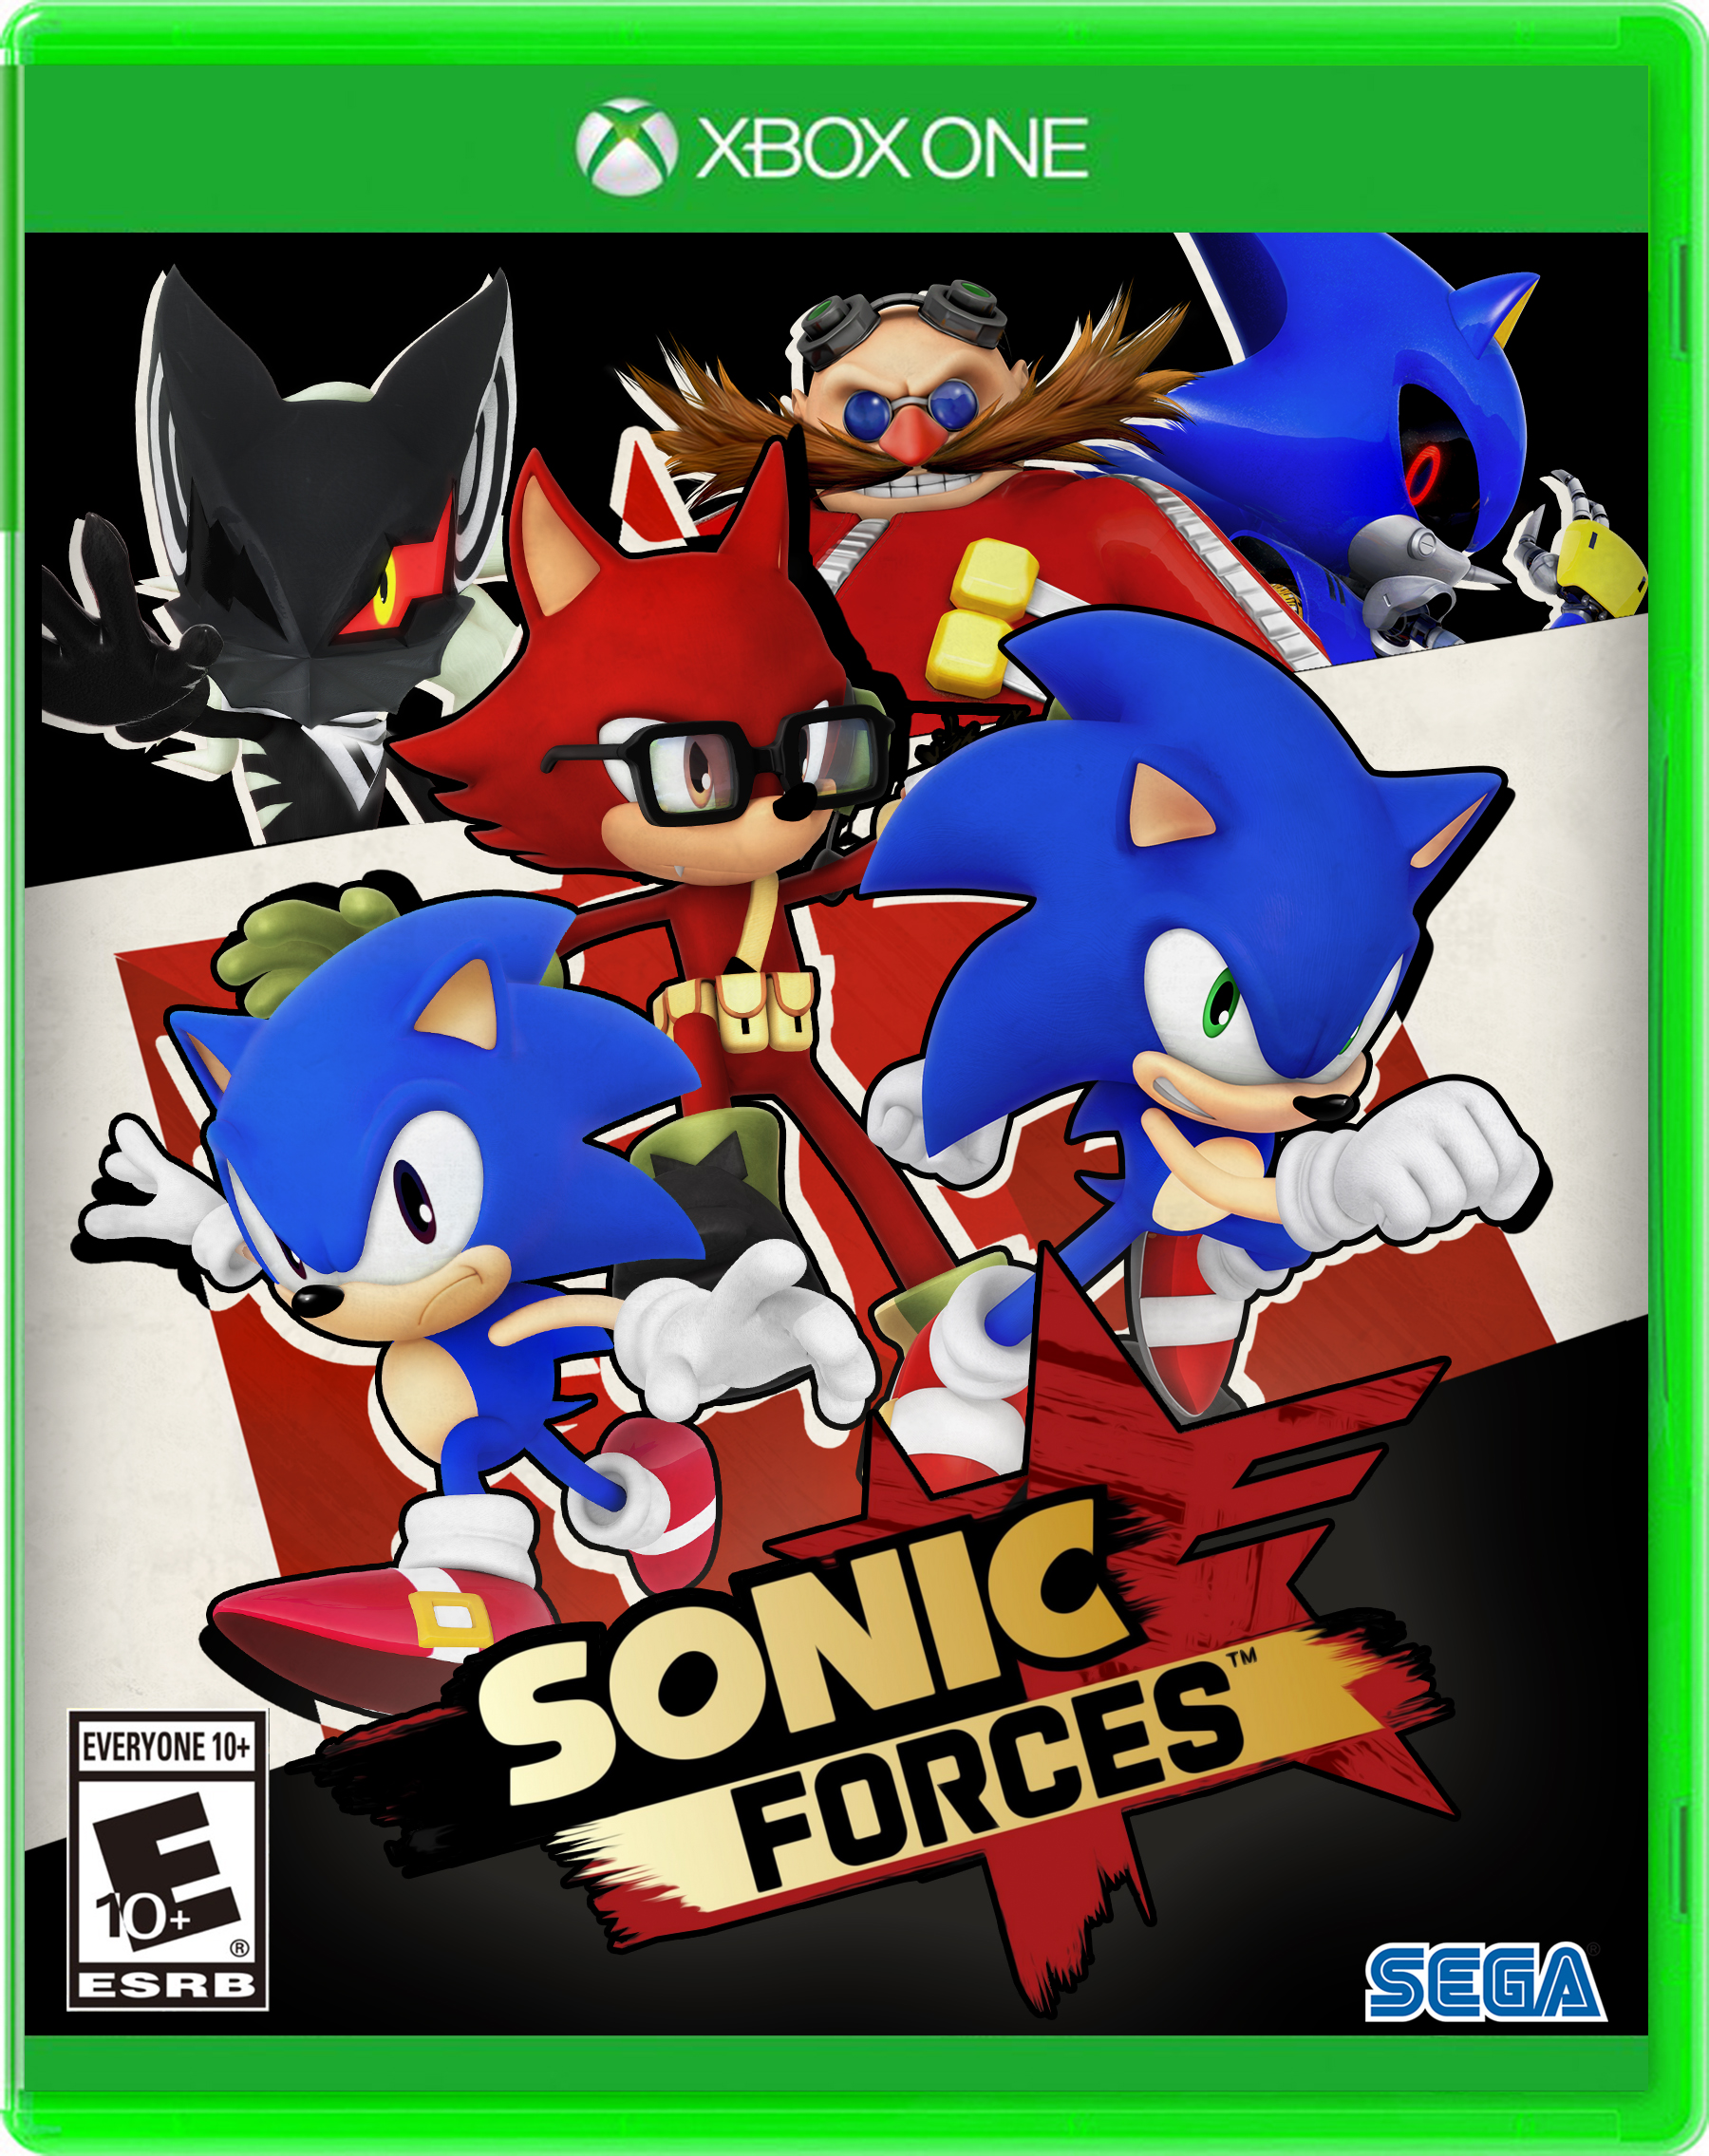 Nibroc S Sonic Forces Boxart Xboxone By Nibroc Rock On Deviantart